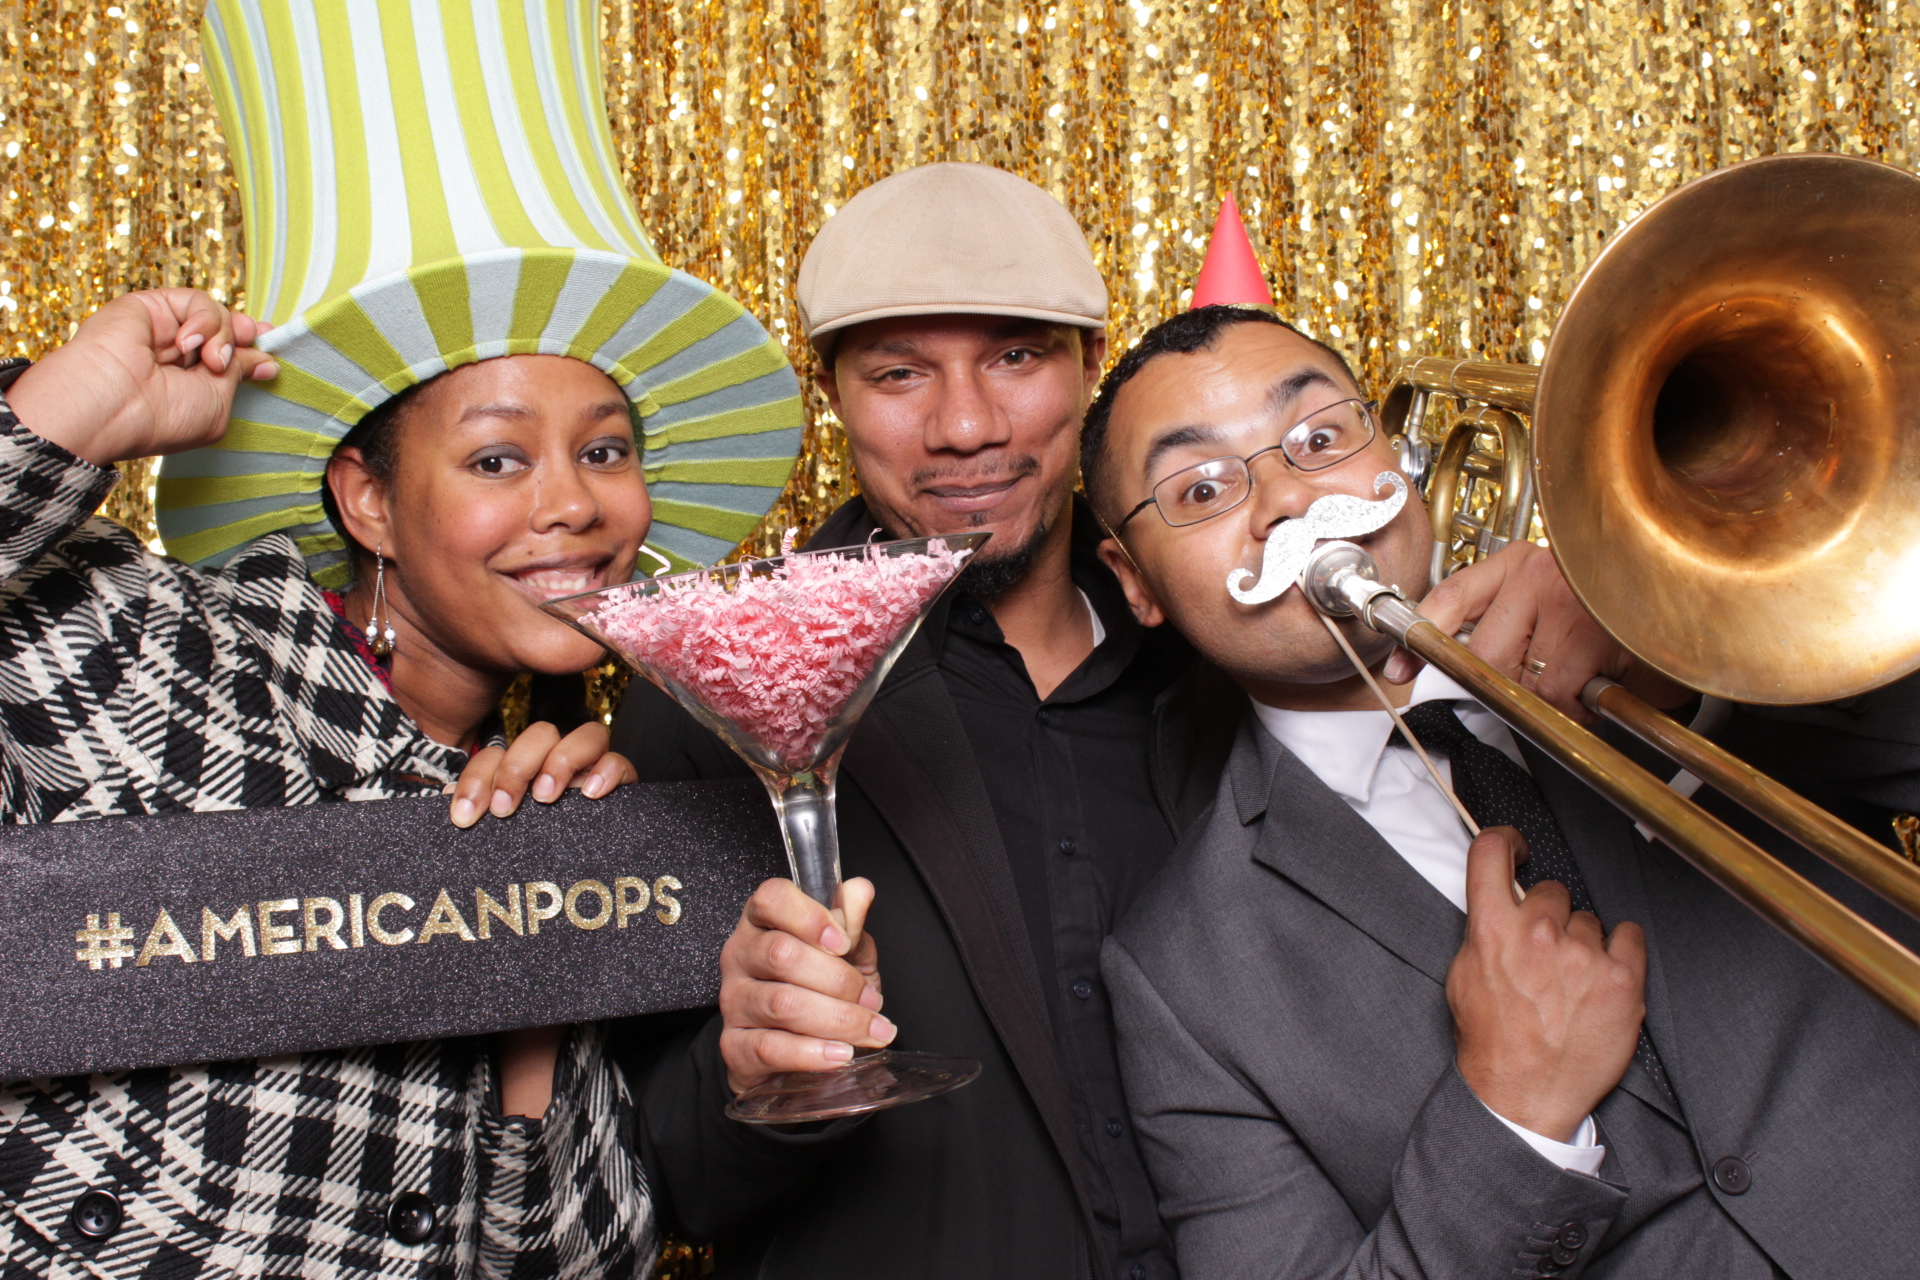 THE AMERICAN POPS ORCHESTRA | HOT PINK PHOTO BOOTH